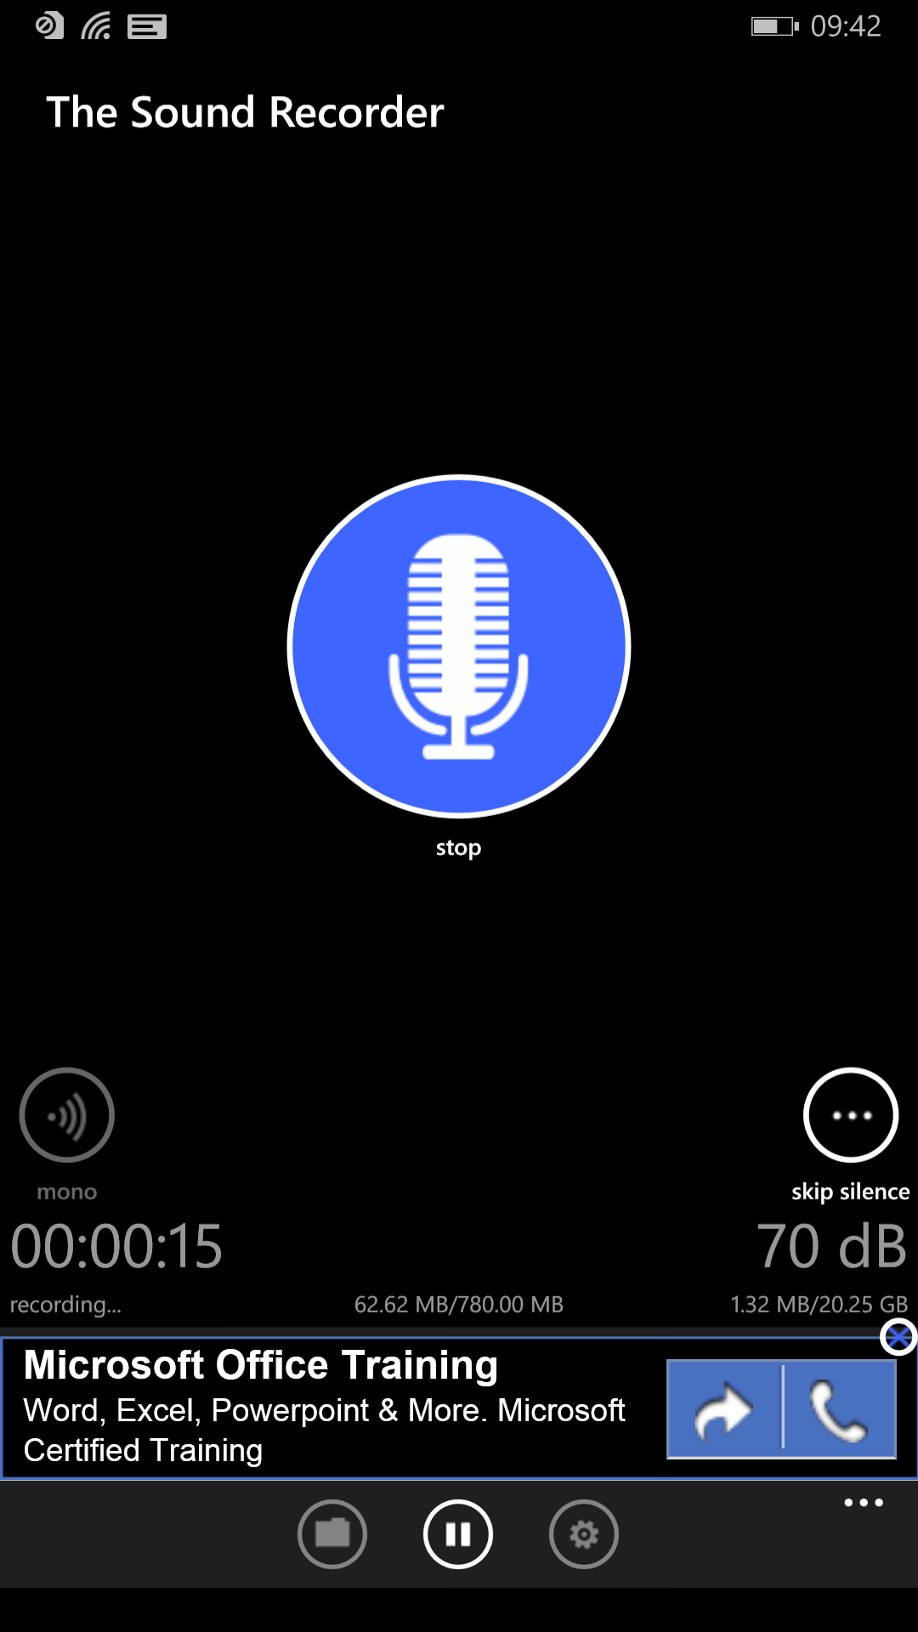 The Sound Recorder screenshot